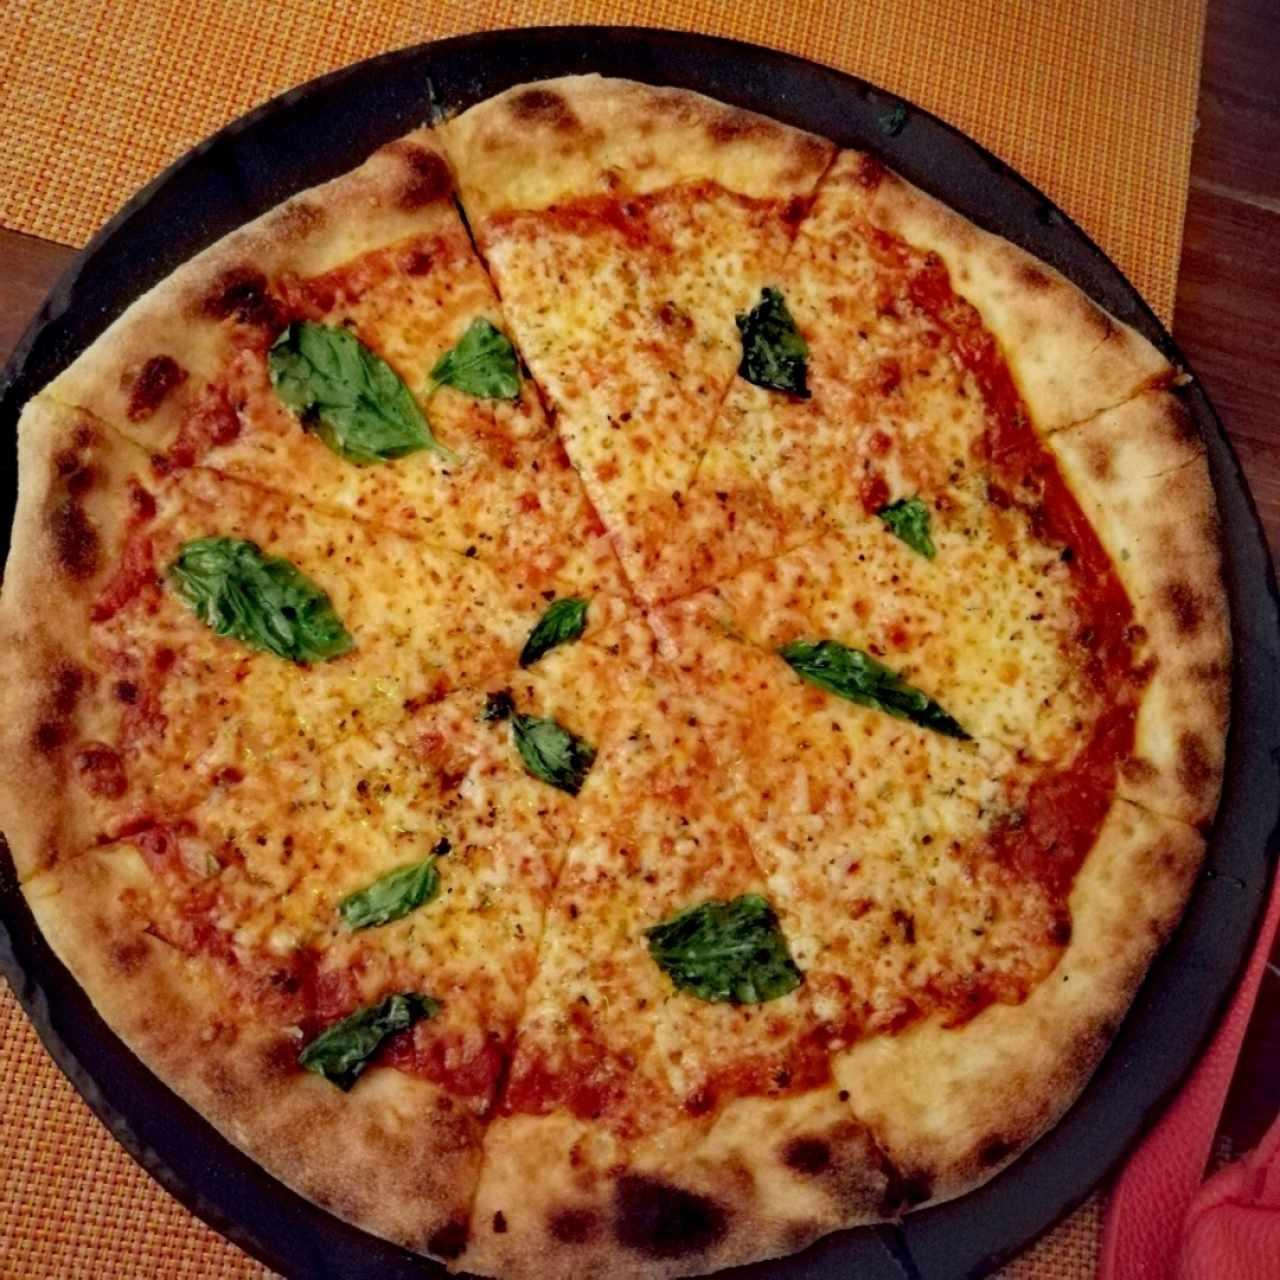 Pizza Margarita, excelente la masa delgada!! Sitio agradable!!